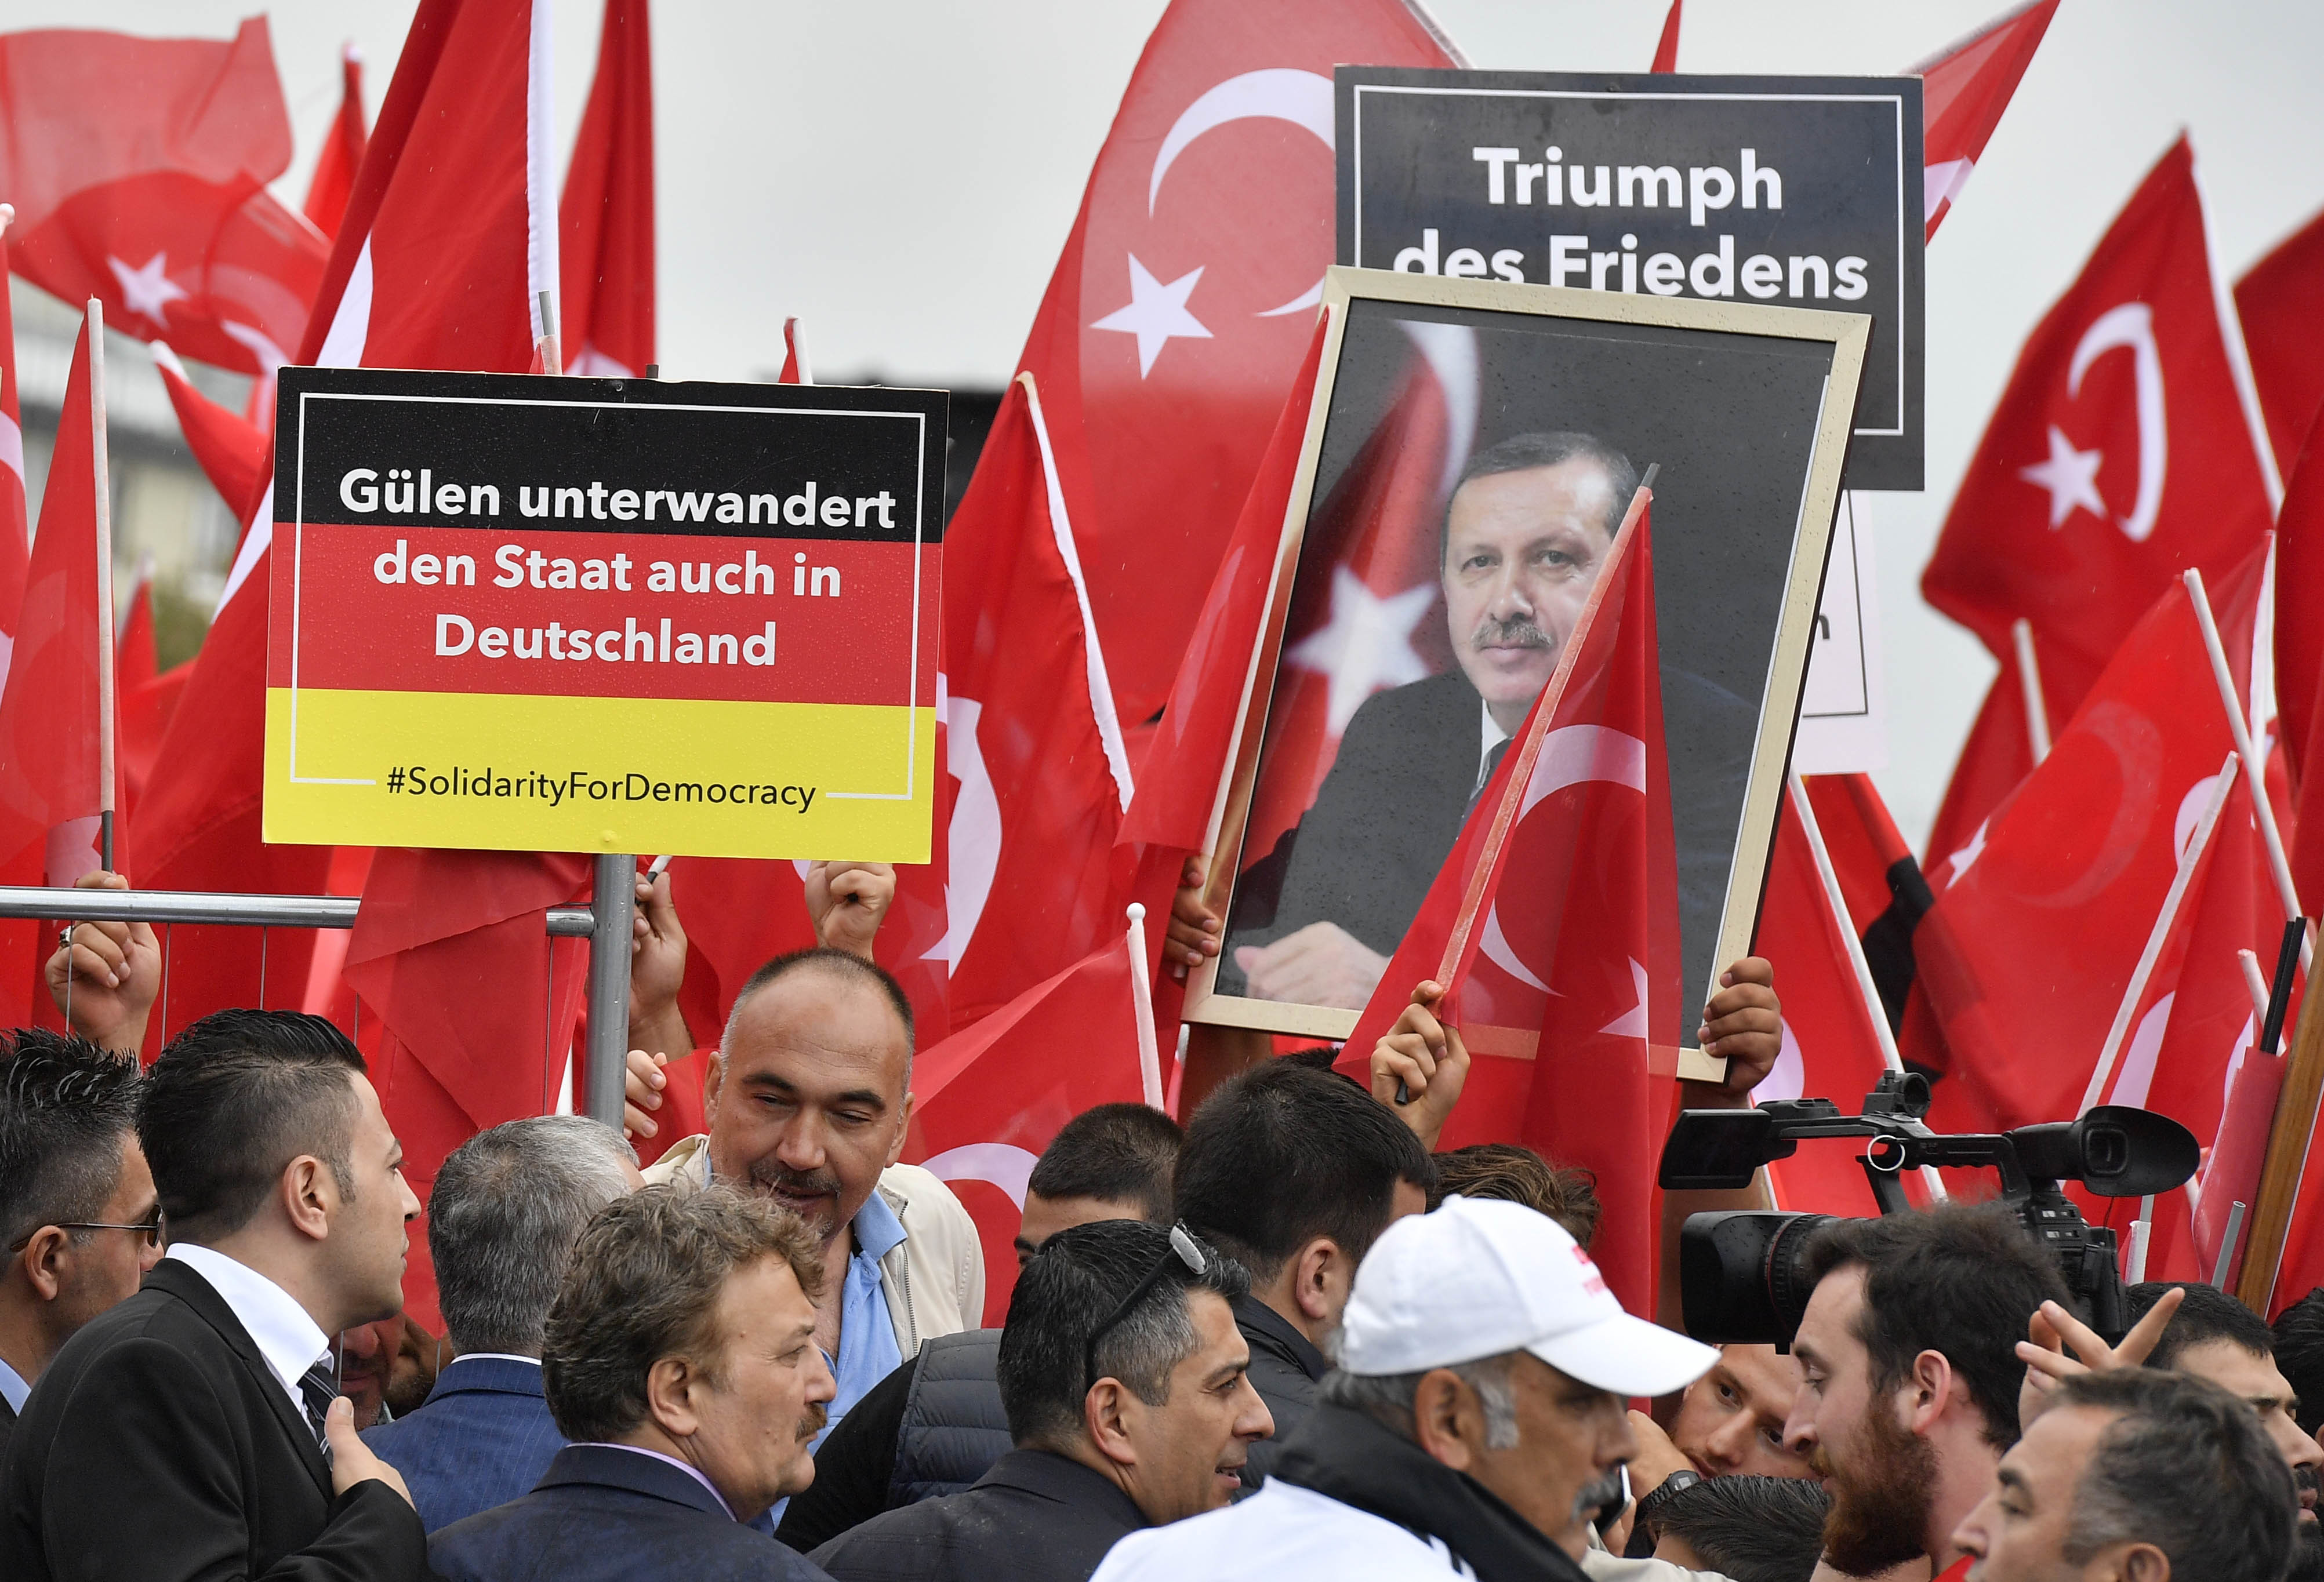 FILE - Turkish protestors hold a banner reading 'Gulen infiltrers the state also in Germany' during a demonstration  in Cologne, Germany, July 31, 2016.